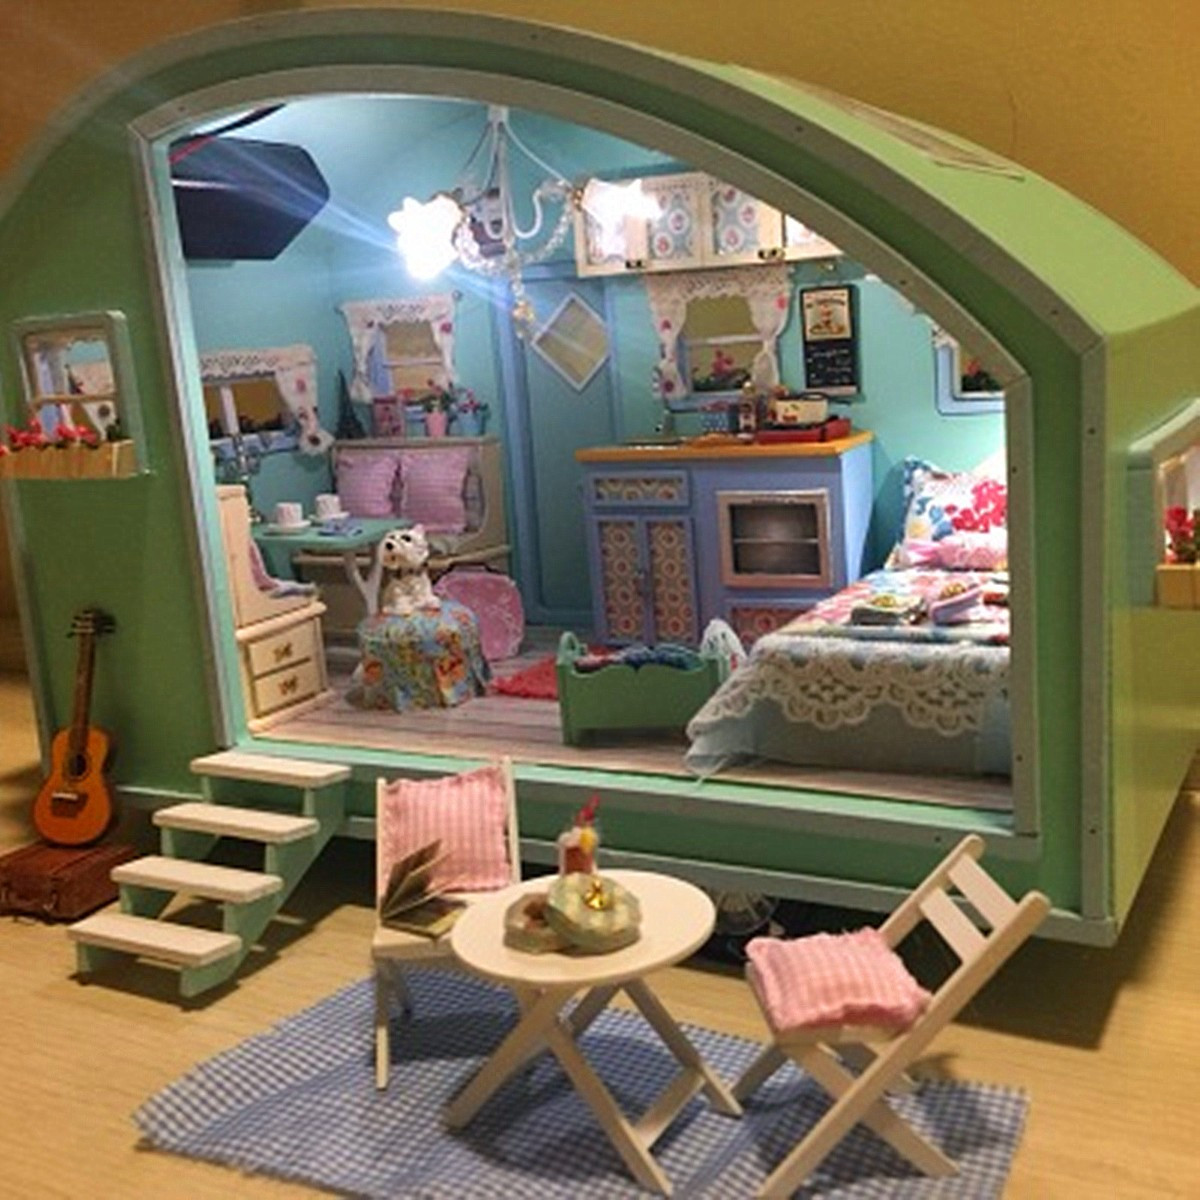 Best ideas about DIY Dollhouse Kit . Save or Pin DIY Wooden Dollhouse Miniature Kit Doll house LED Music Now.